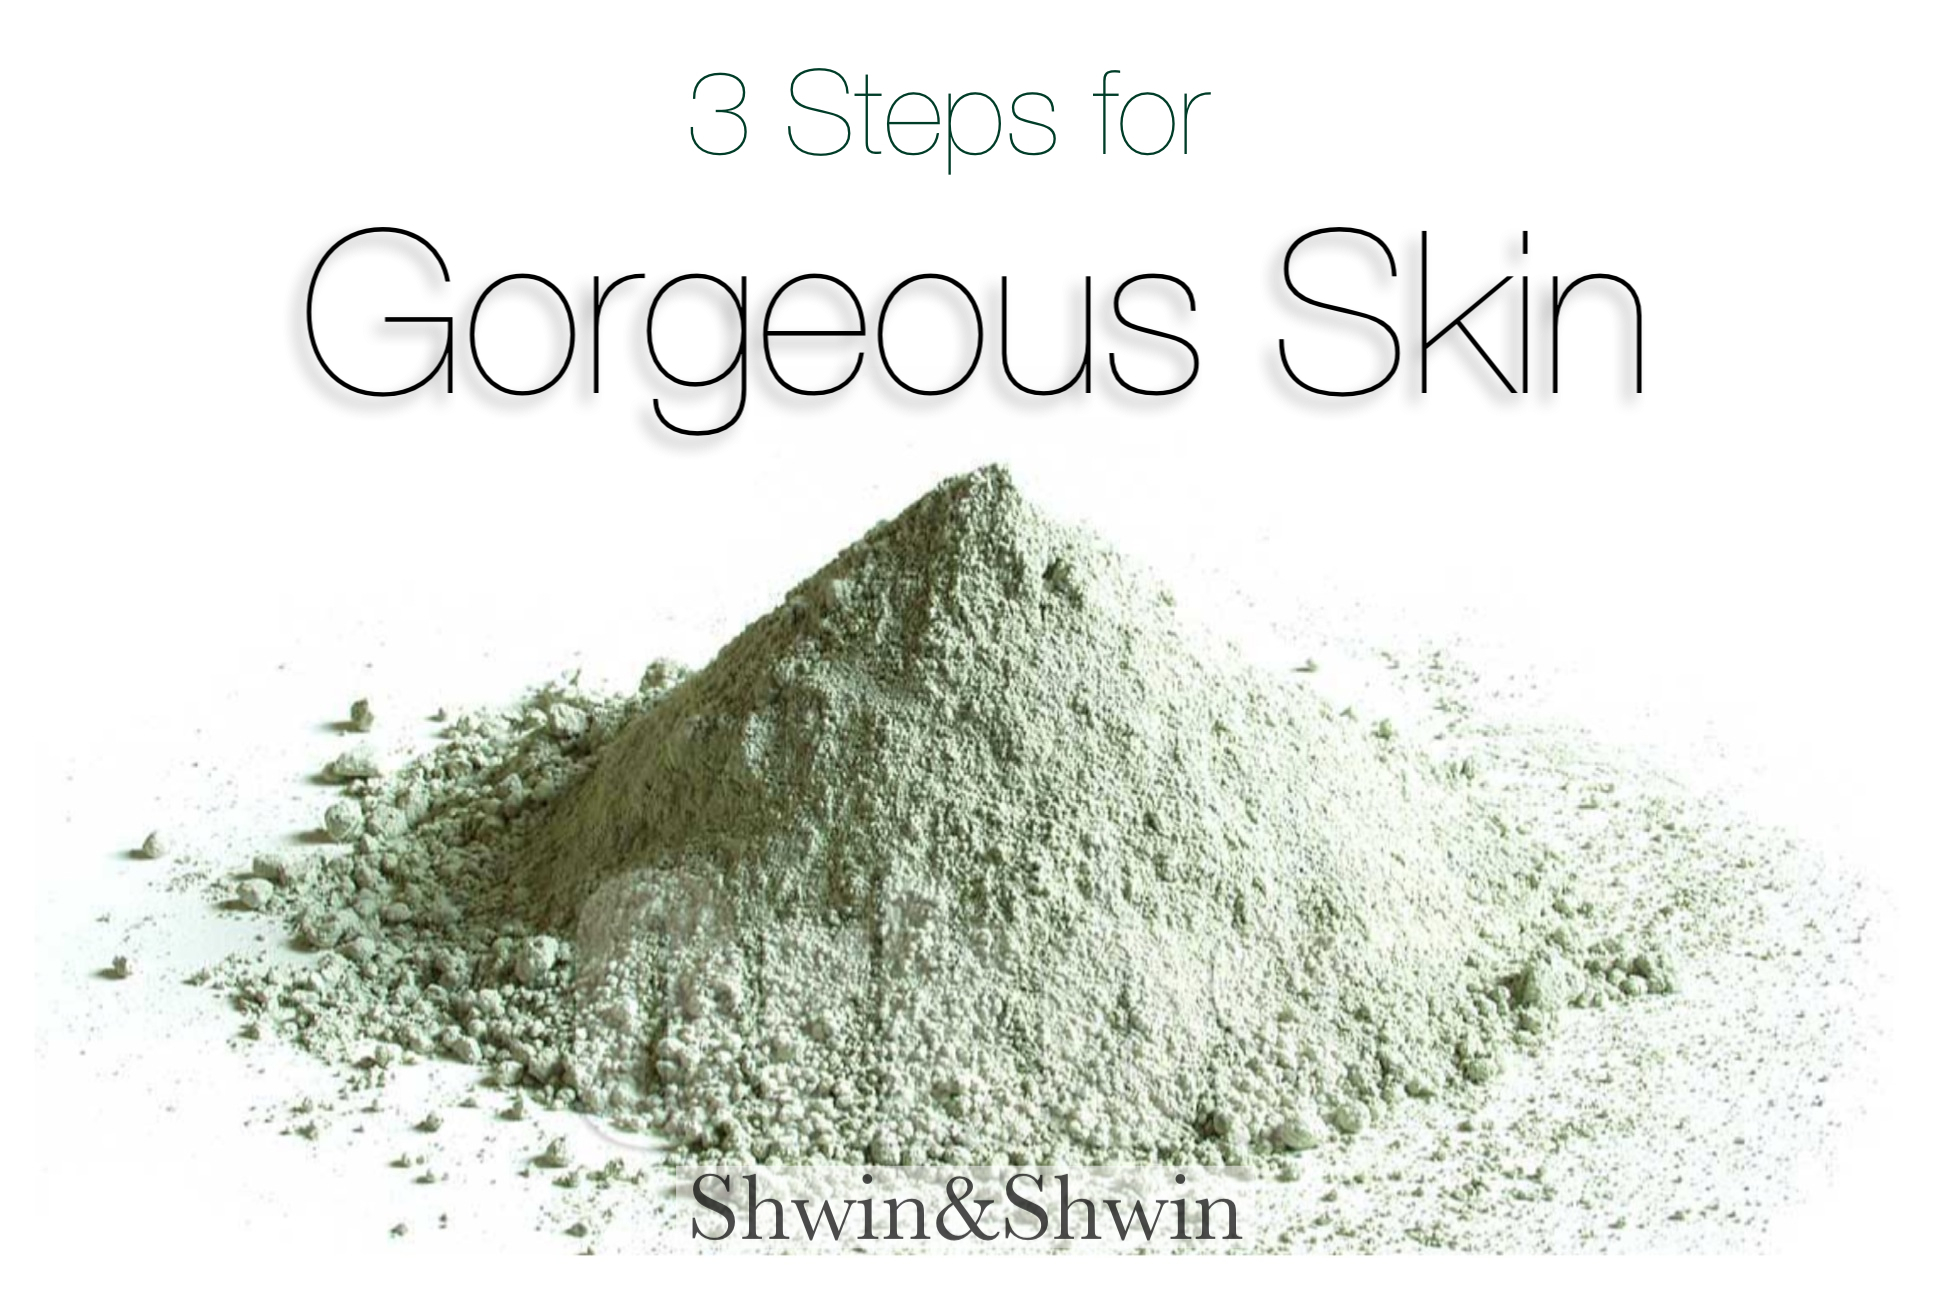 3 Steps for Gorgeous Skin